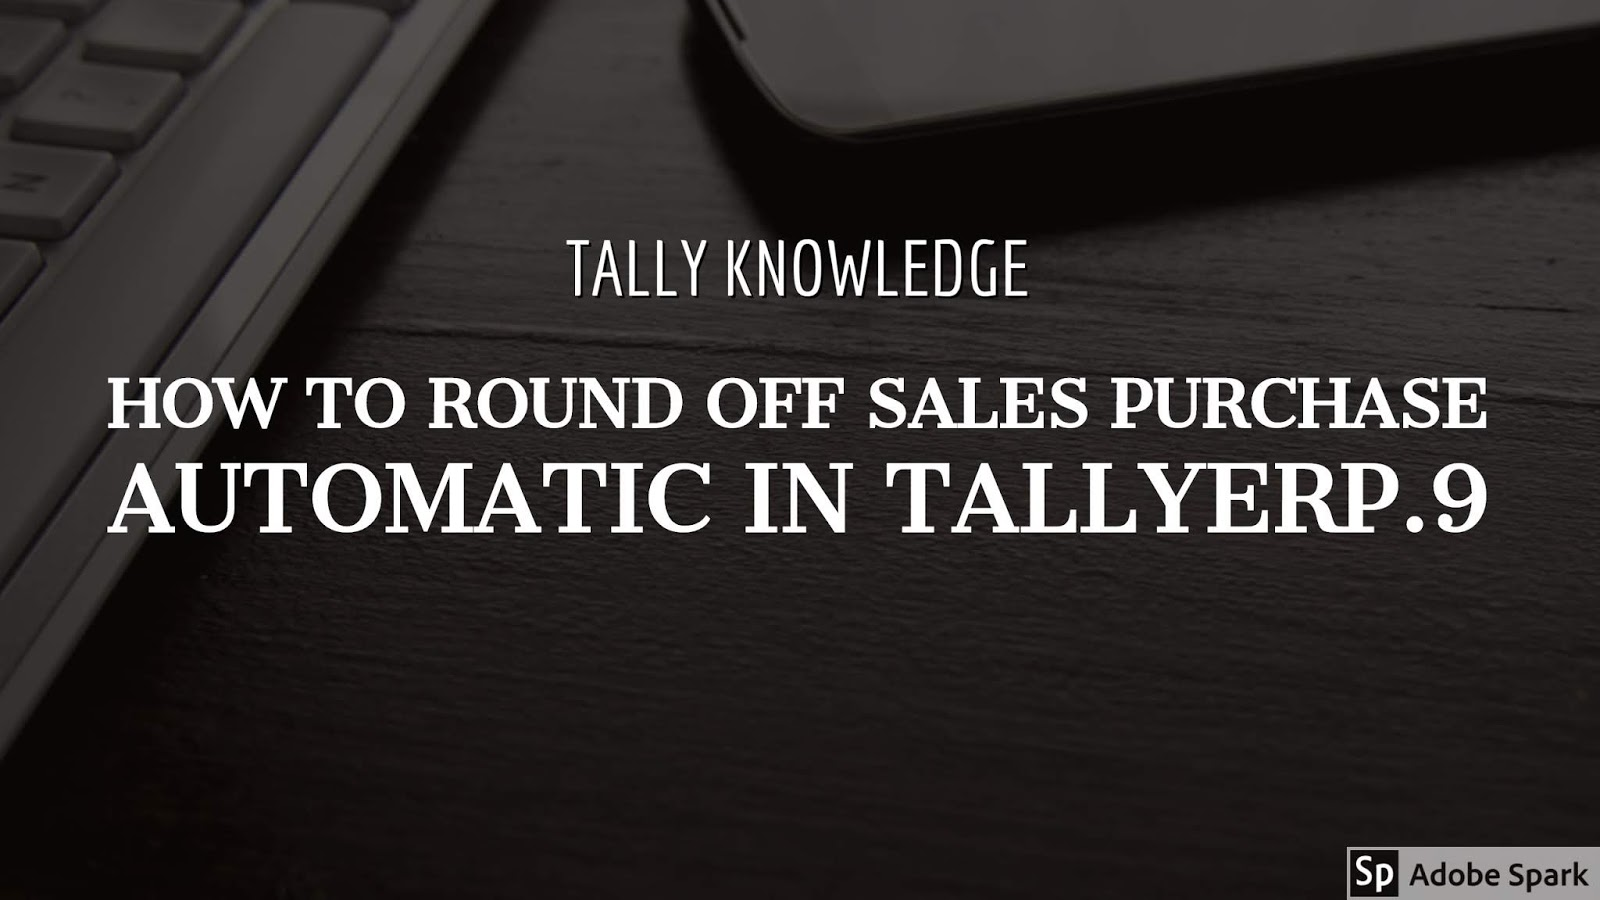 How to Automatic Round off Sales and Purchase Entry in Tally